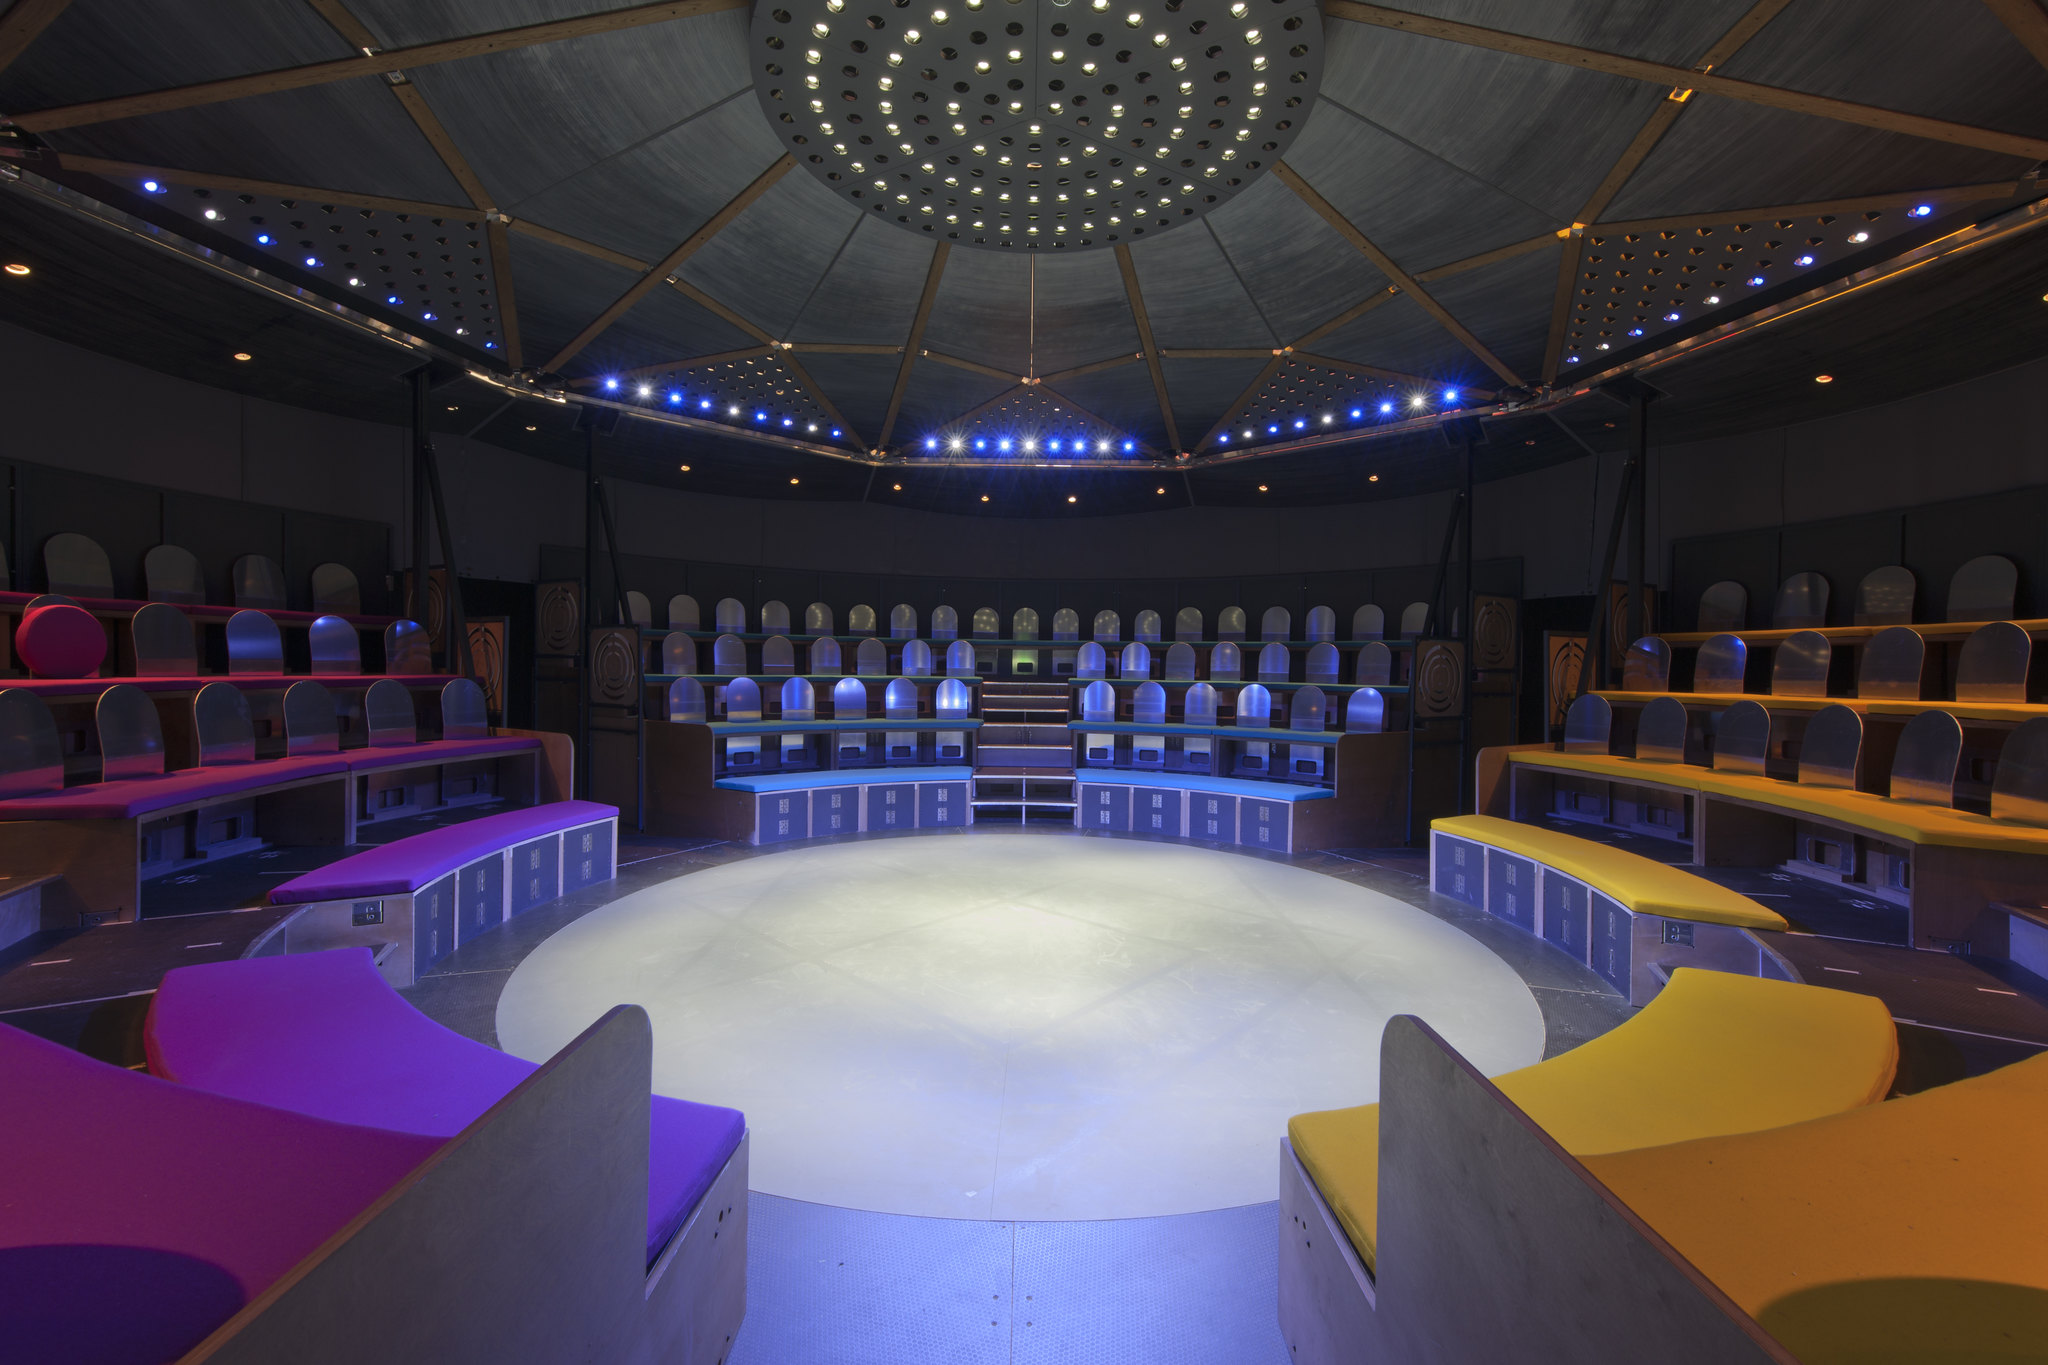 Image: Inside Paines Plough's Roundabout. Seating circles centre stage.